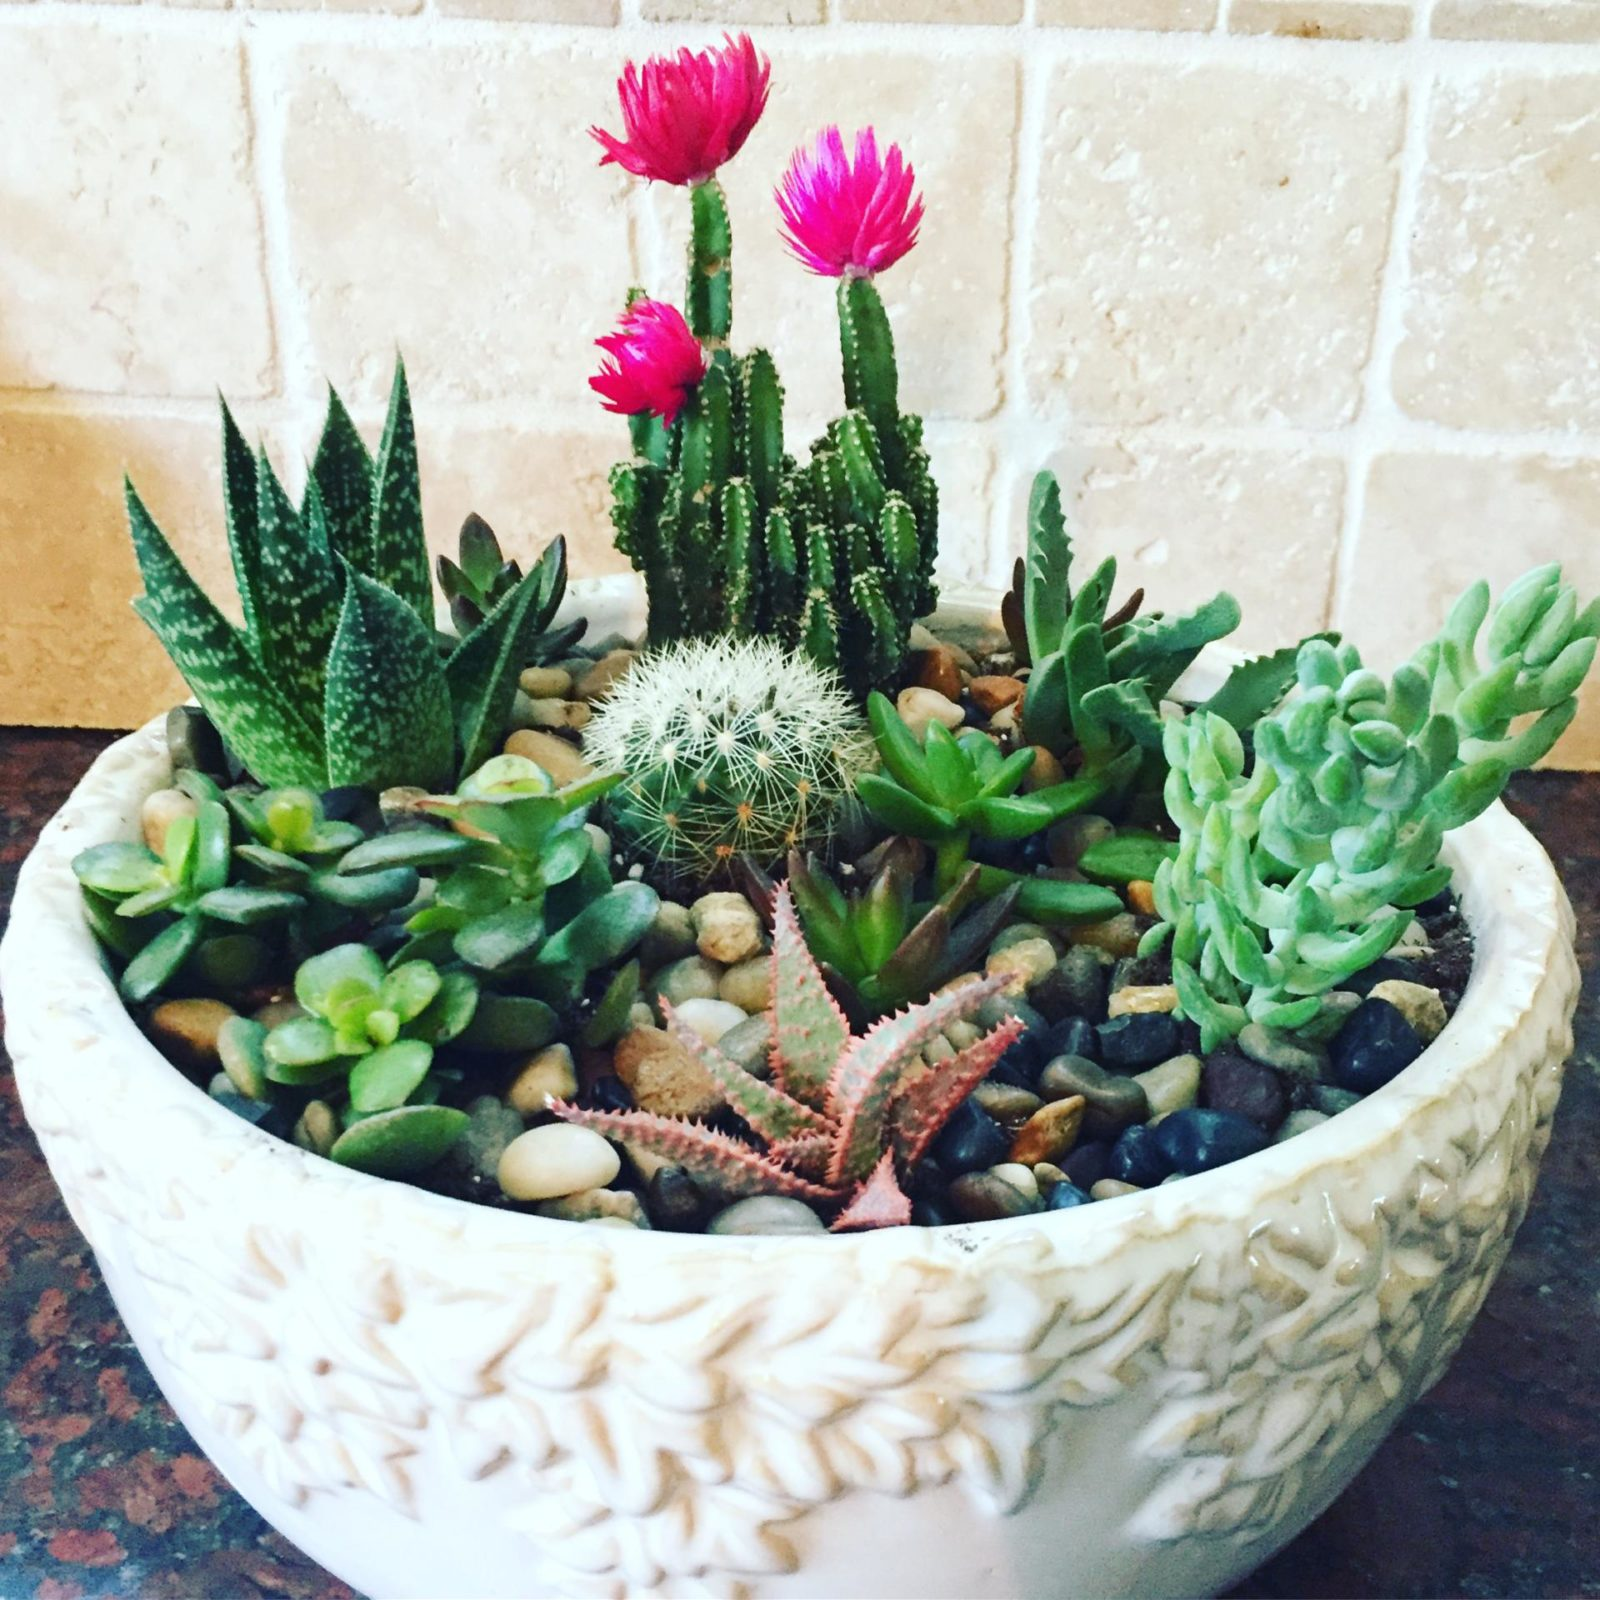 Wondering how you can make your own succulent garden? It's so easy! Check out my DIY tutorial.